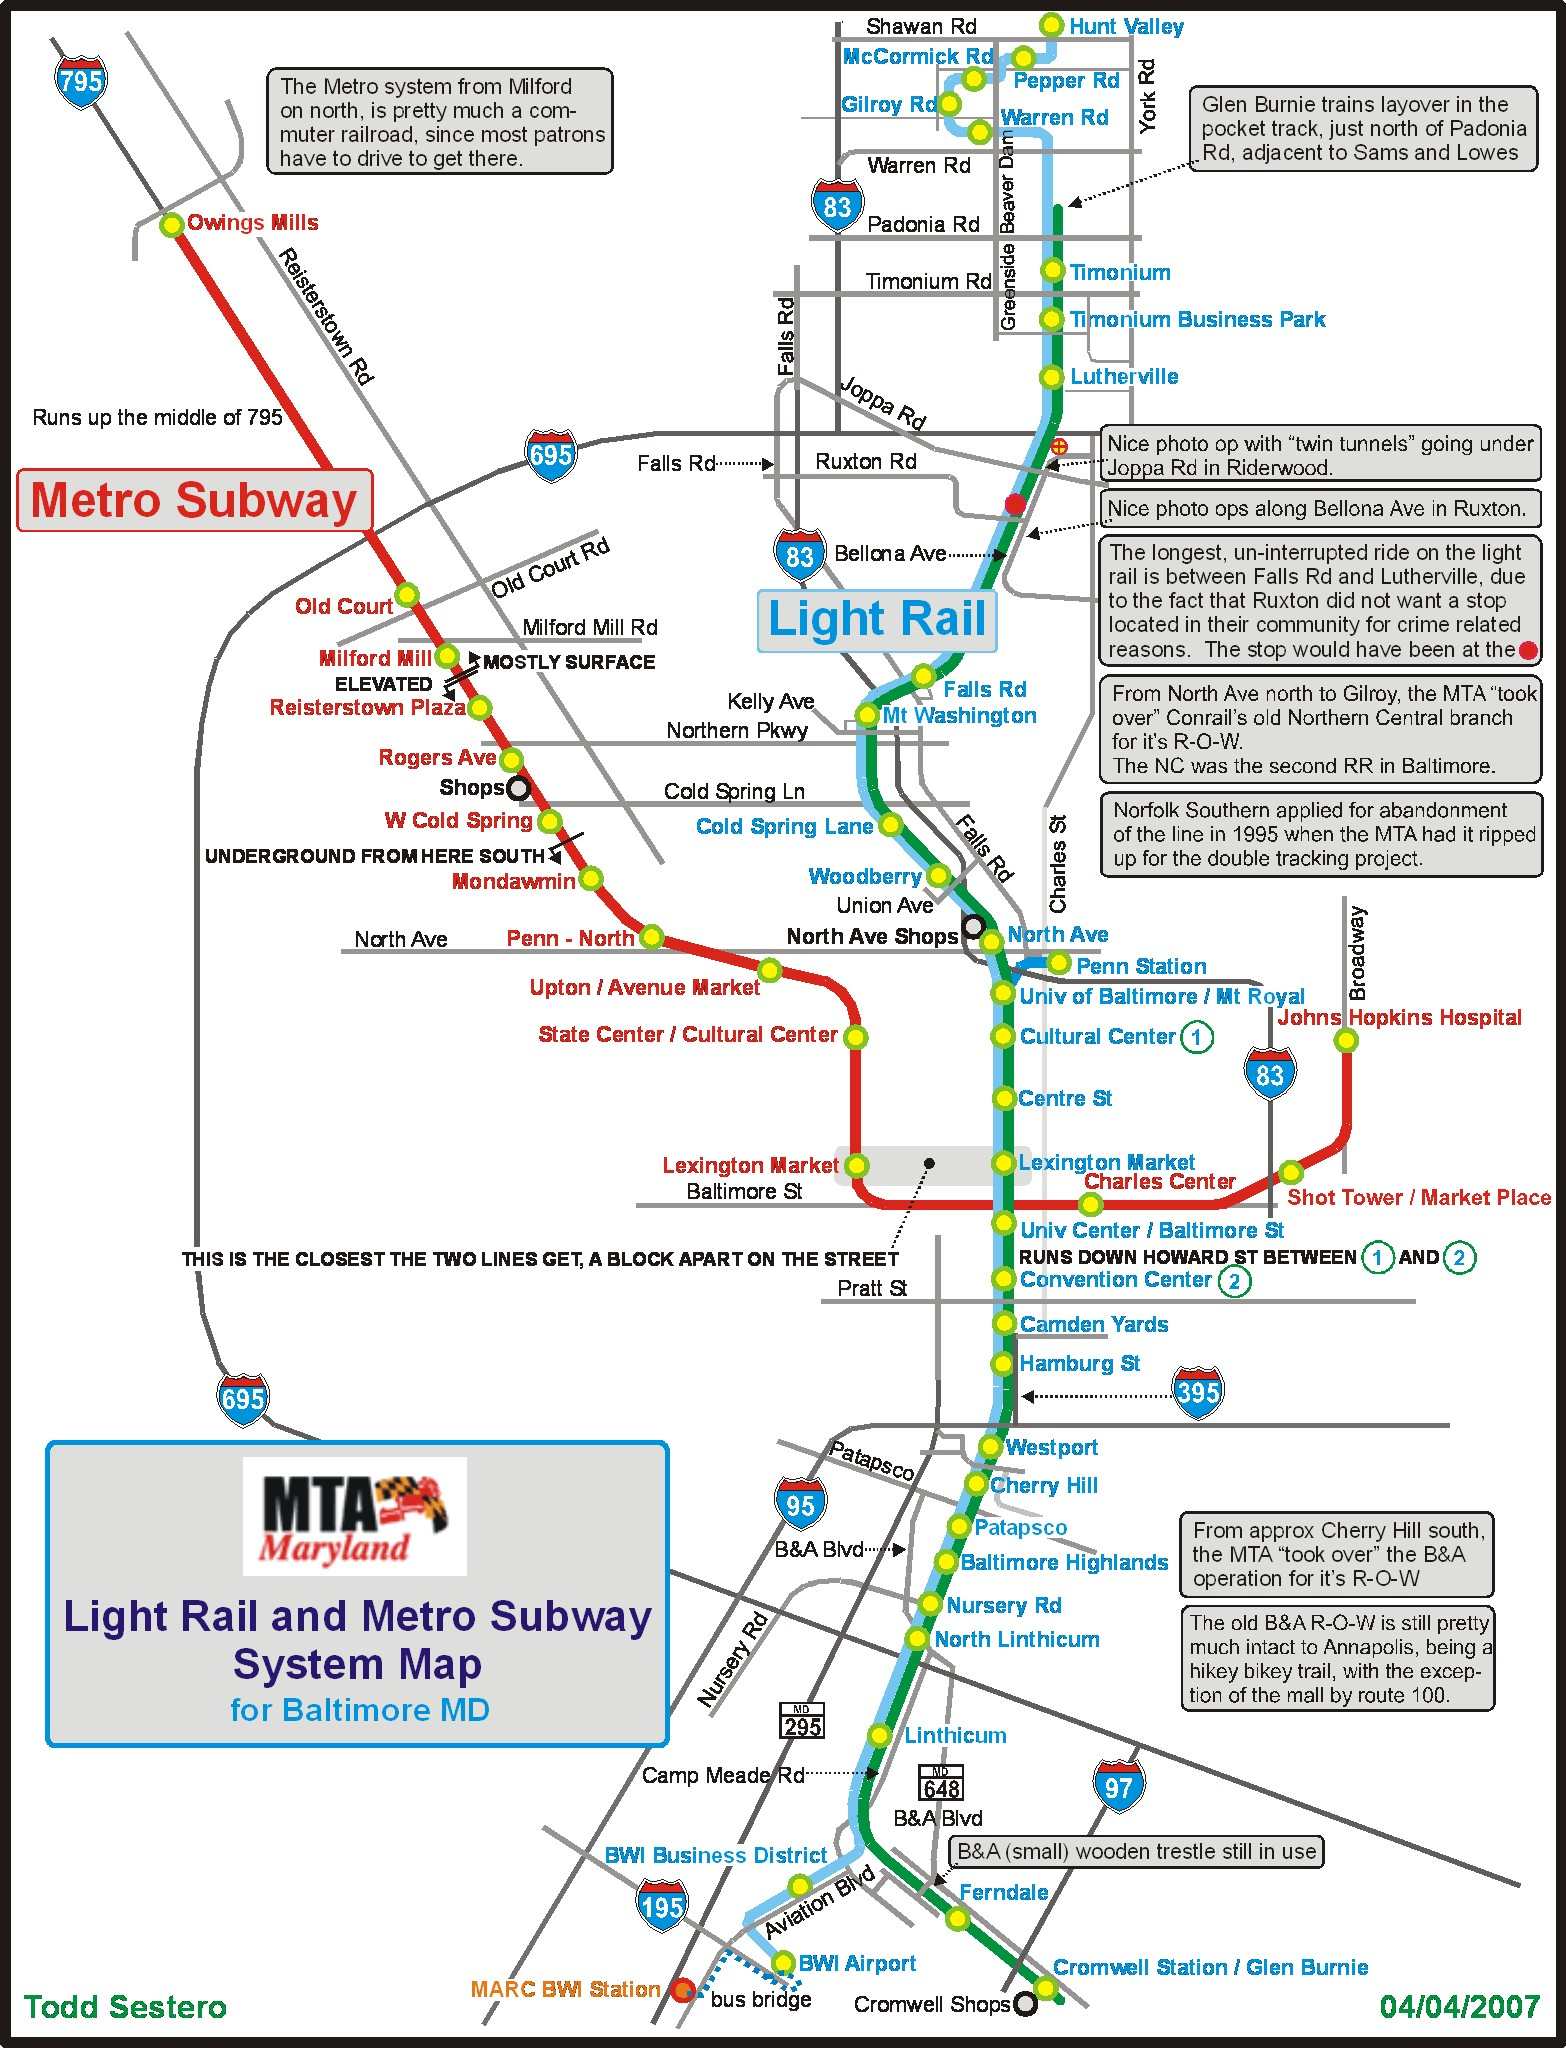 Baltimore Metro Subway Railfan Guide RSUS